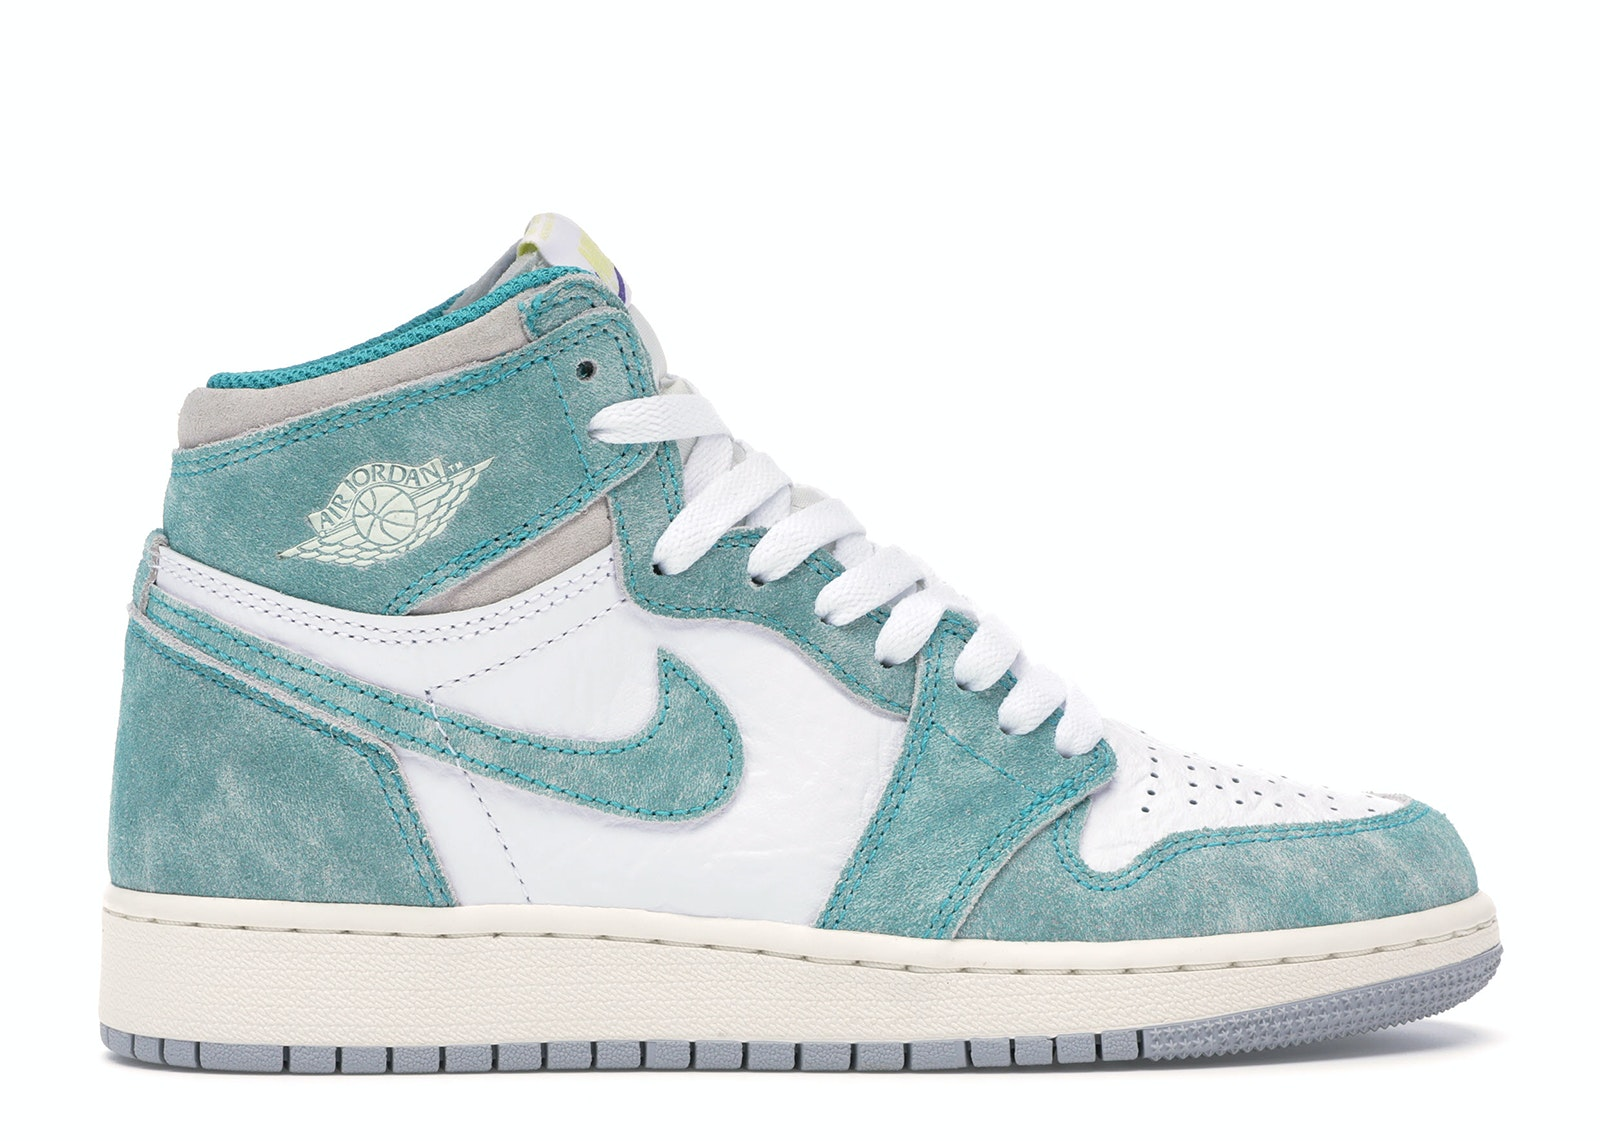 Jordan 1 Retro High Turbo Green (GS)